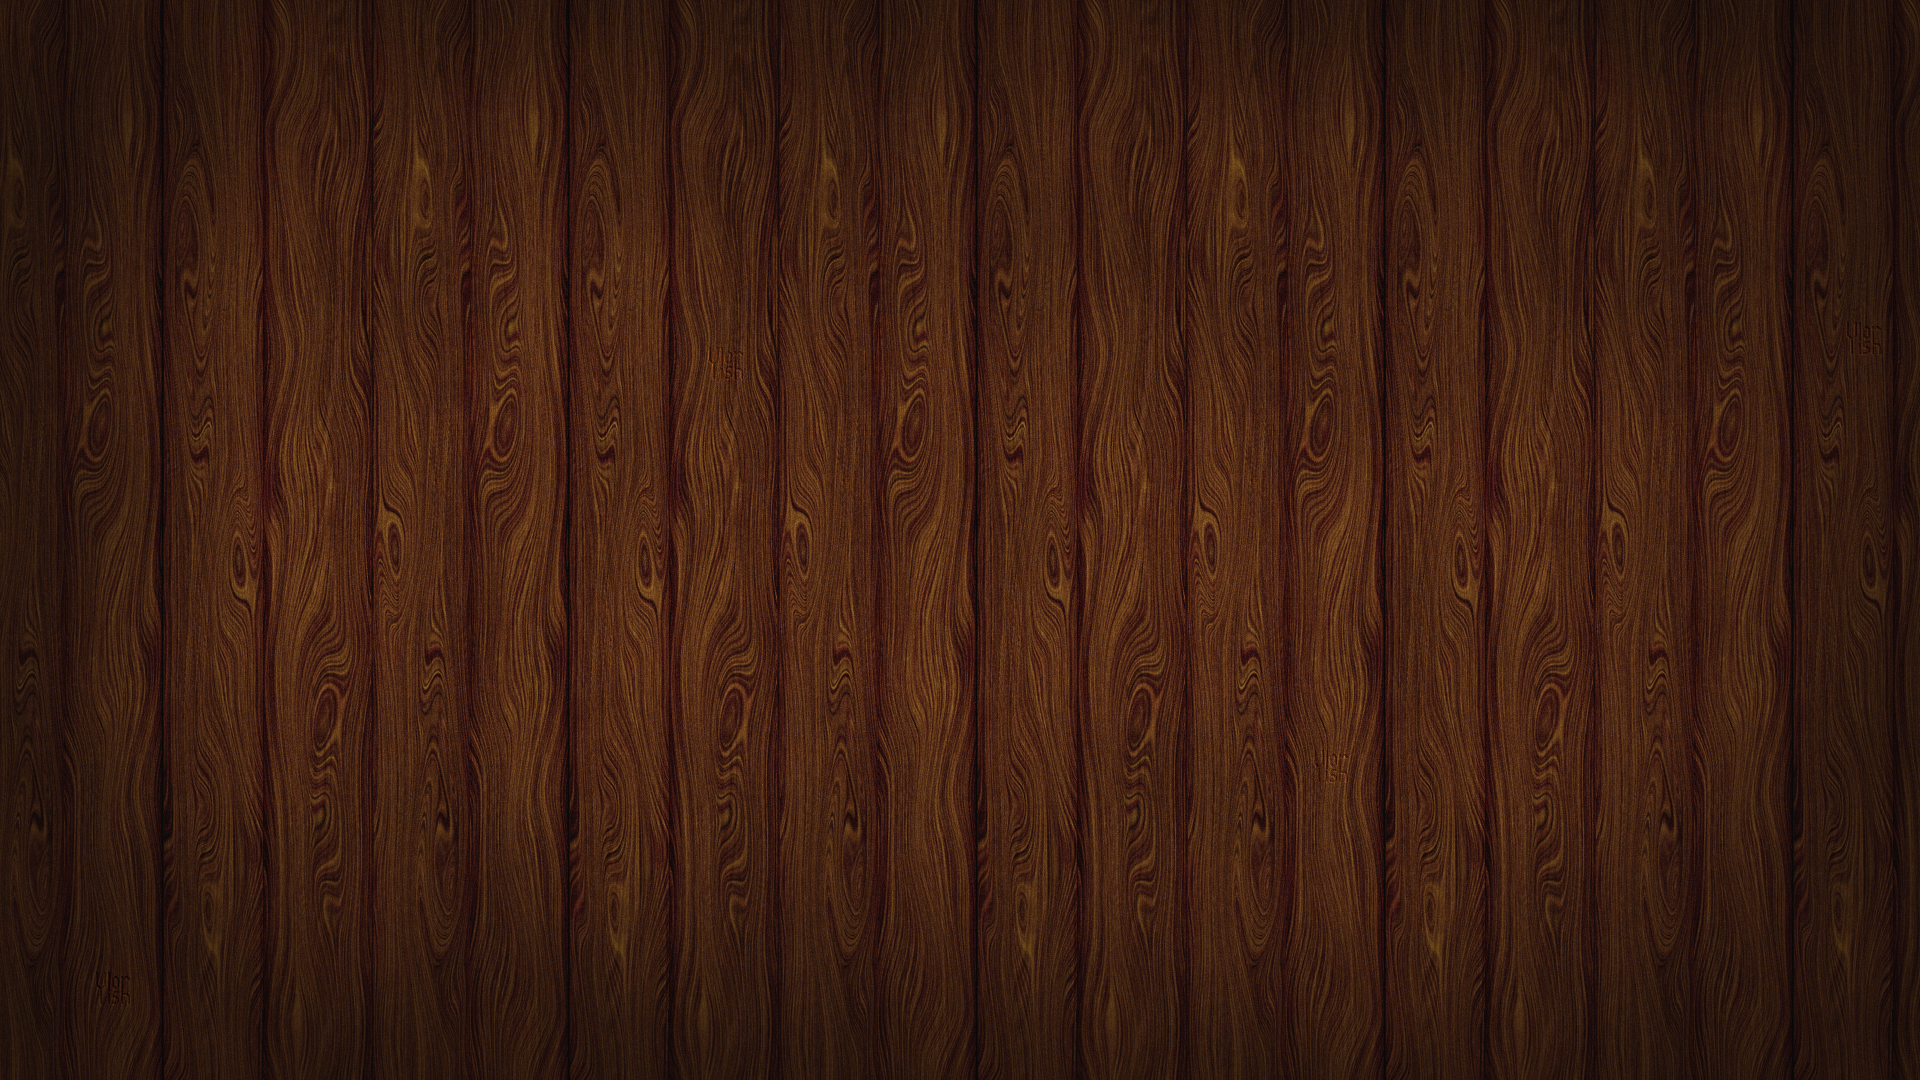 Wood panel wallpaper wallpapersafari for Brewster wallcovering wood panels mural 8 700